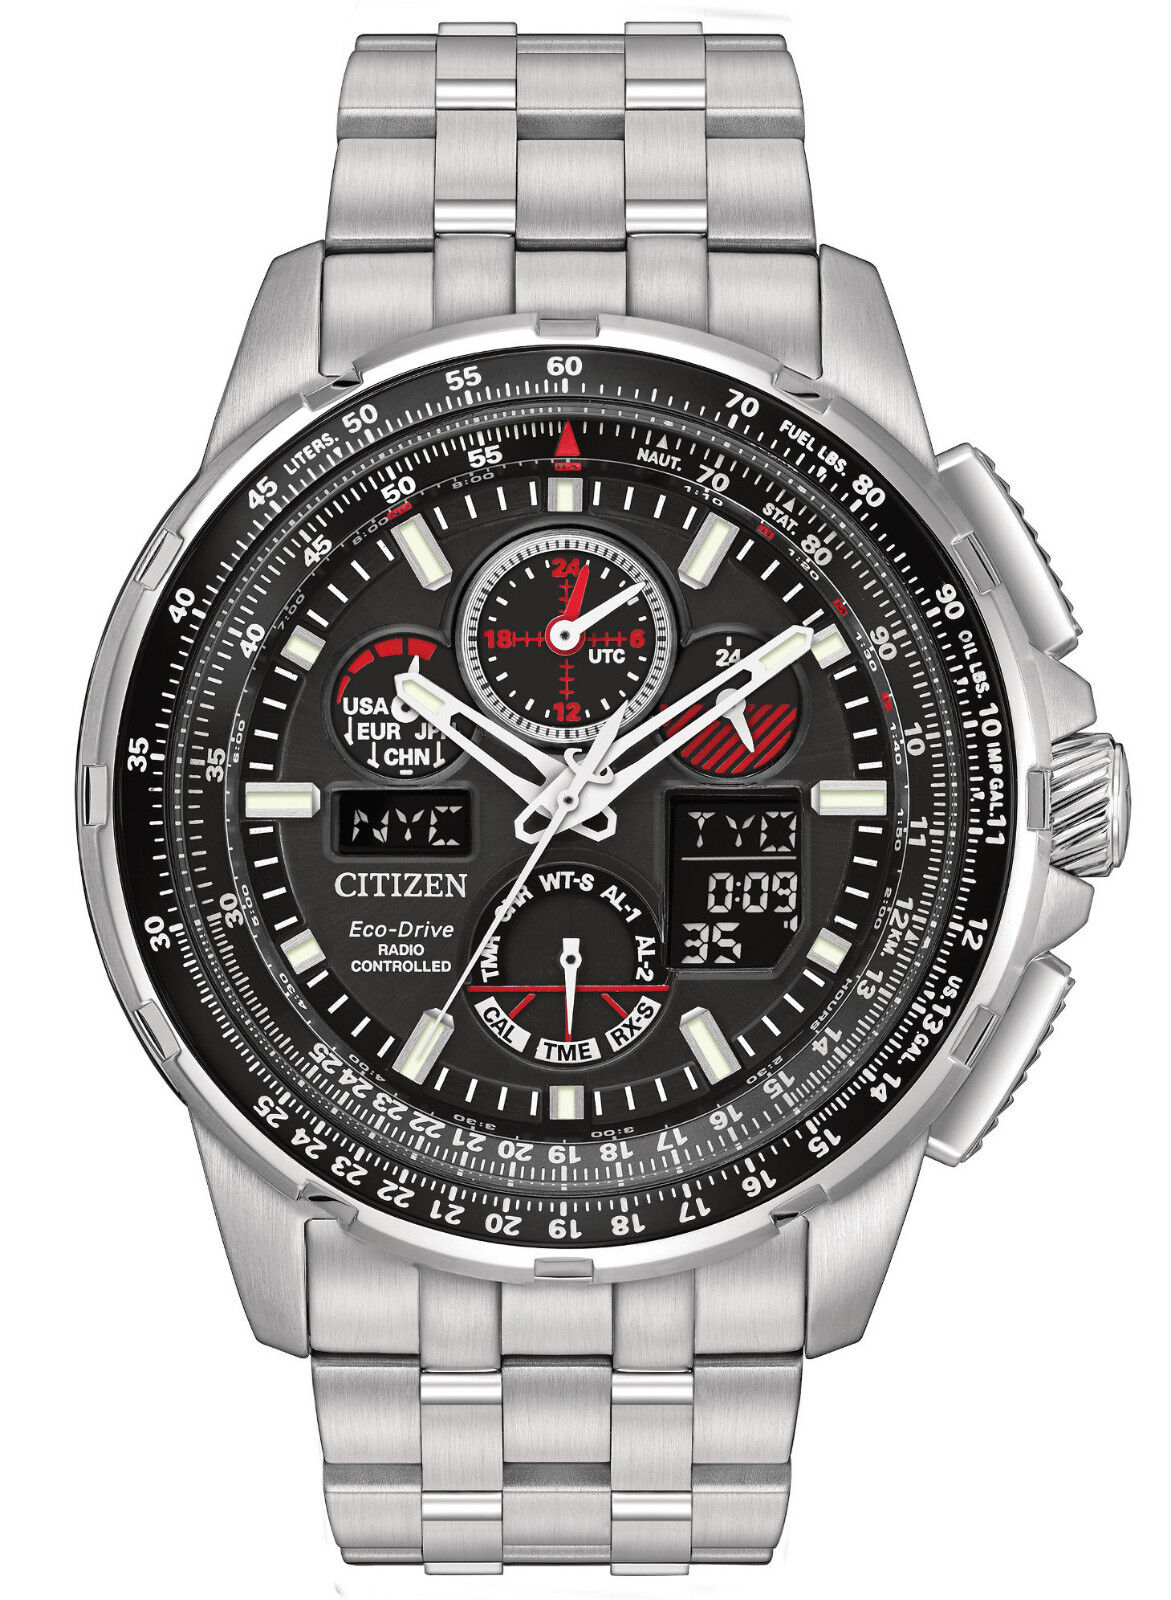 $369.99 - BRAND NEW CITIZEN ECO-DRIVE JY8050-51E SKYHAWK AT BLACK DIAL RED ACCENT